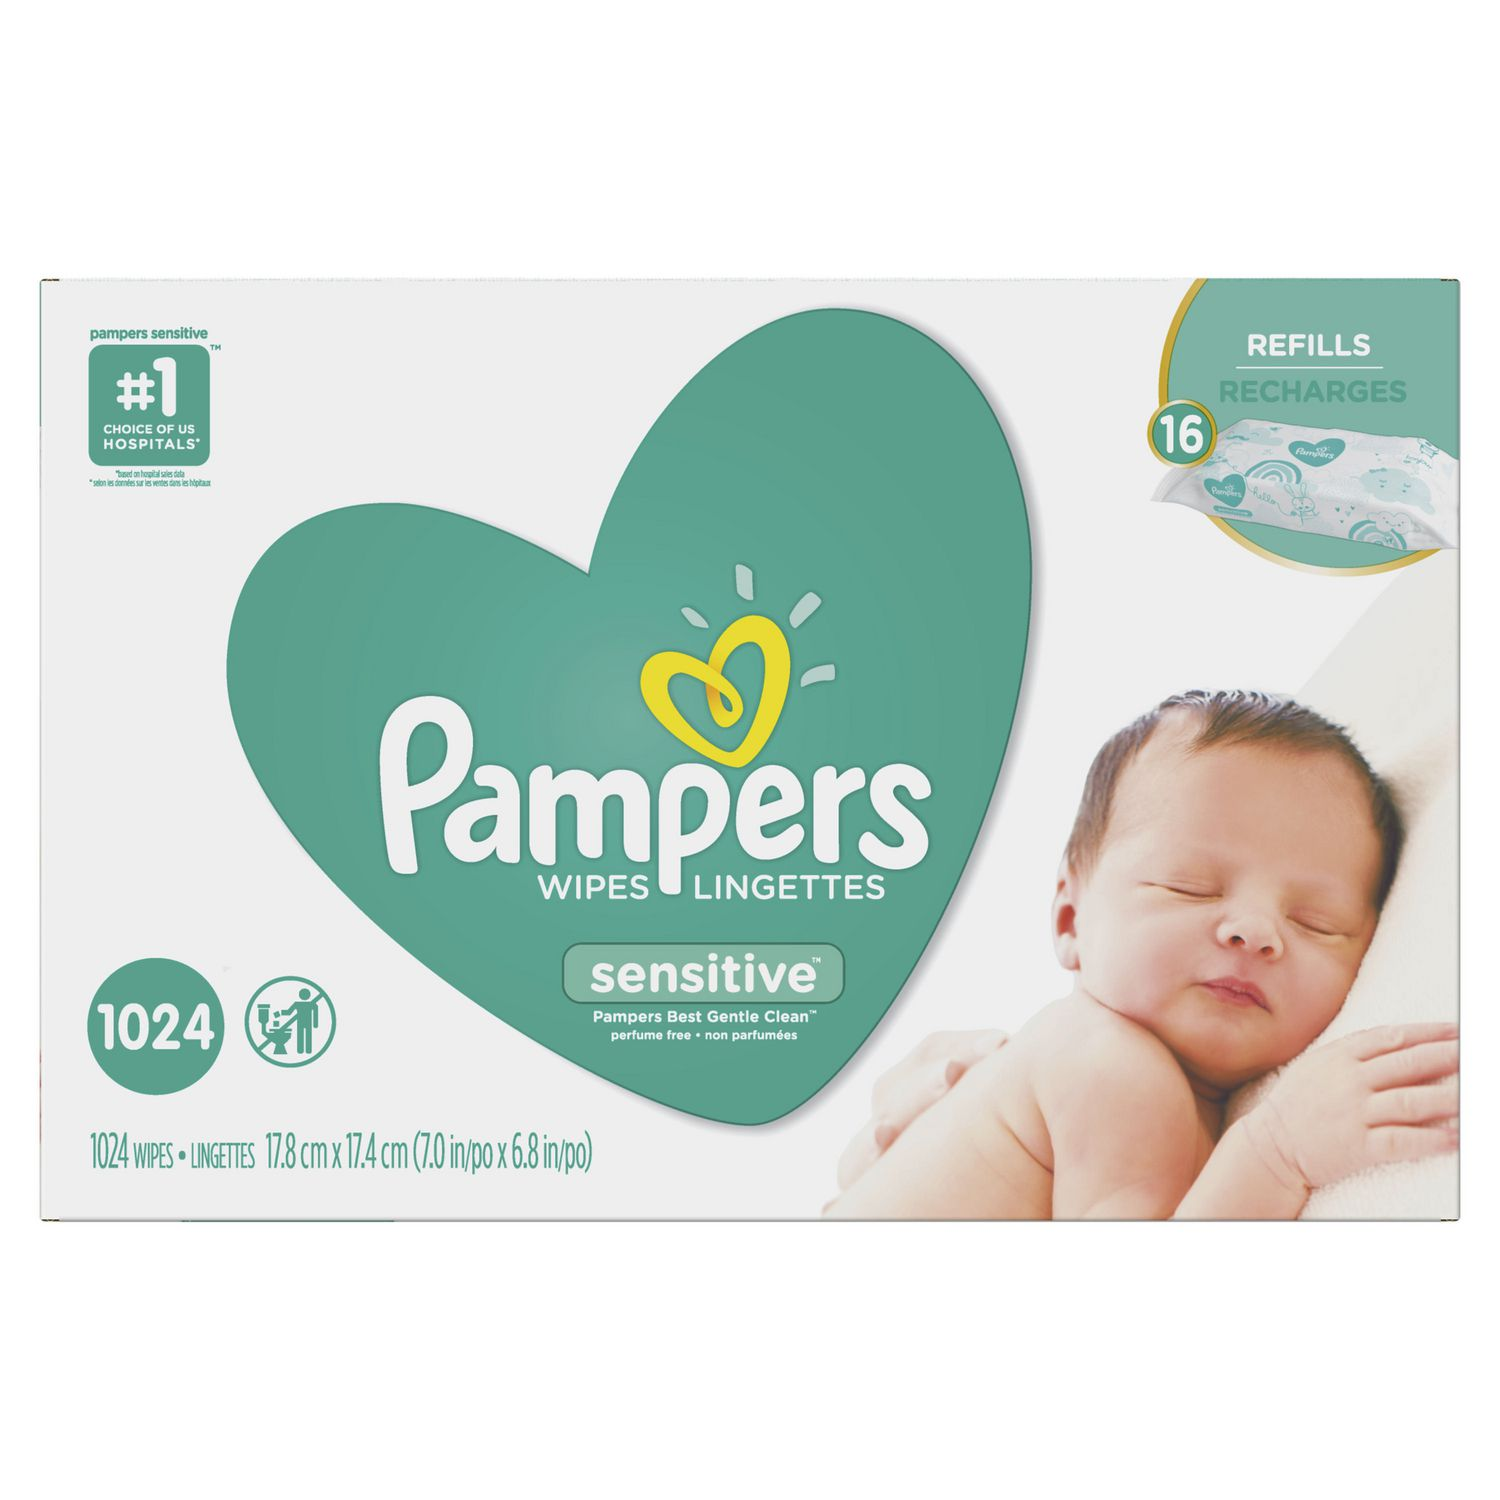 Pampers Baby Wipes Sensitive 16x Refill 1024 Count